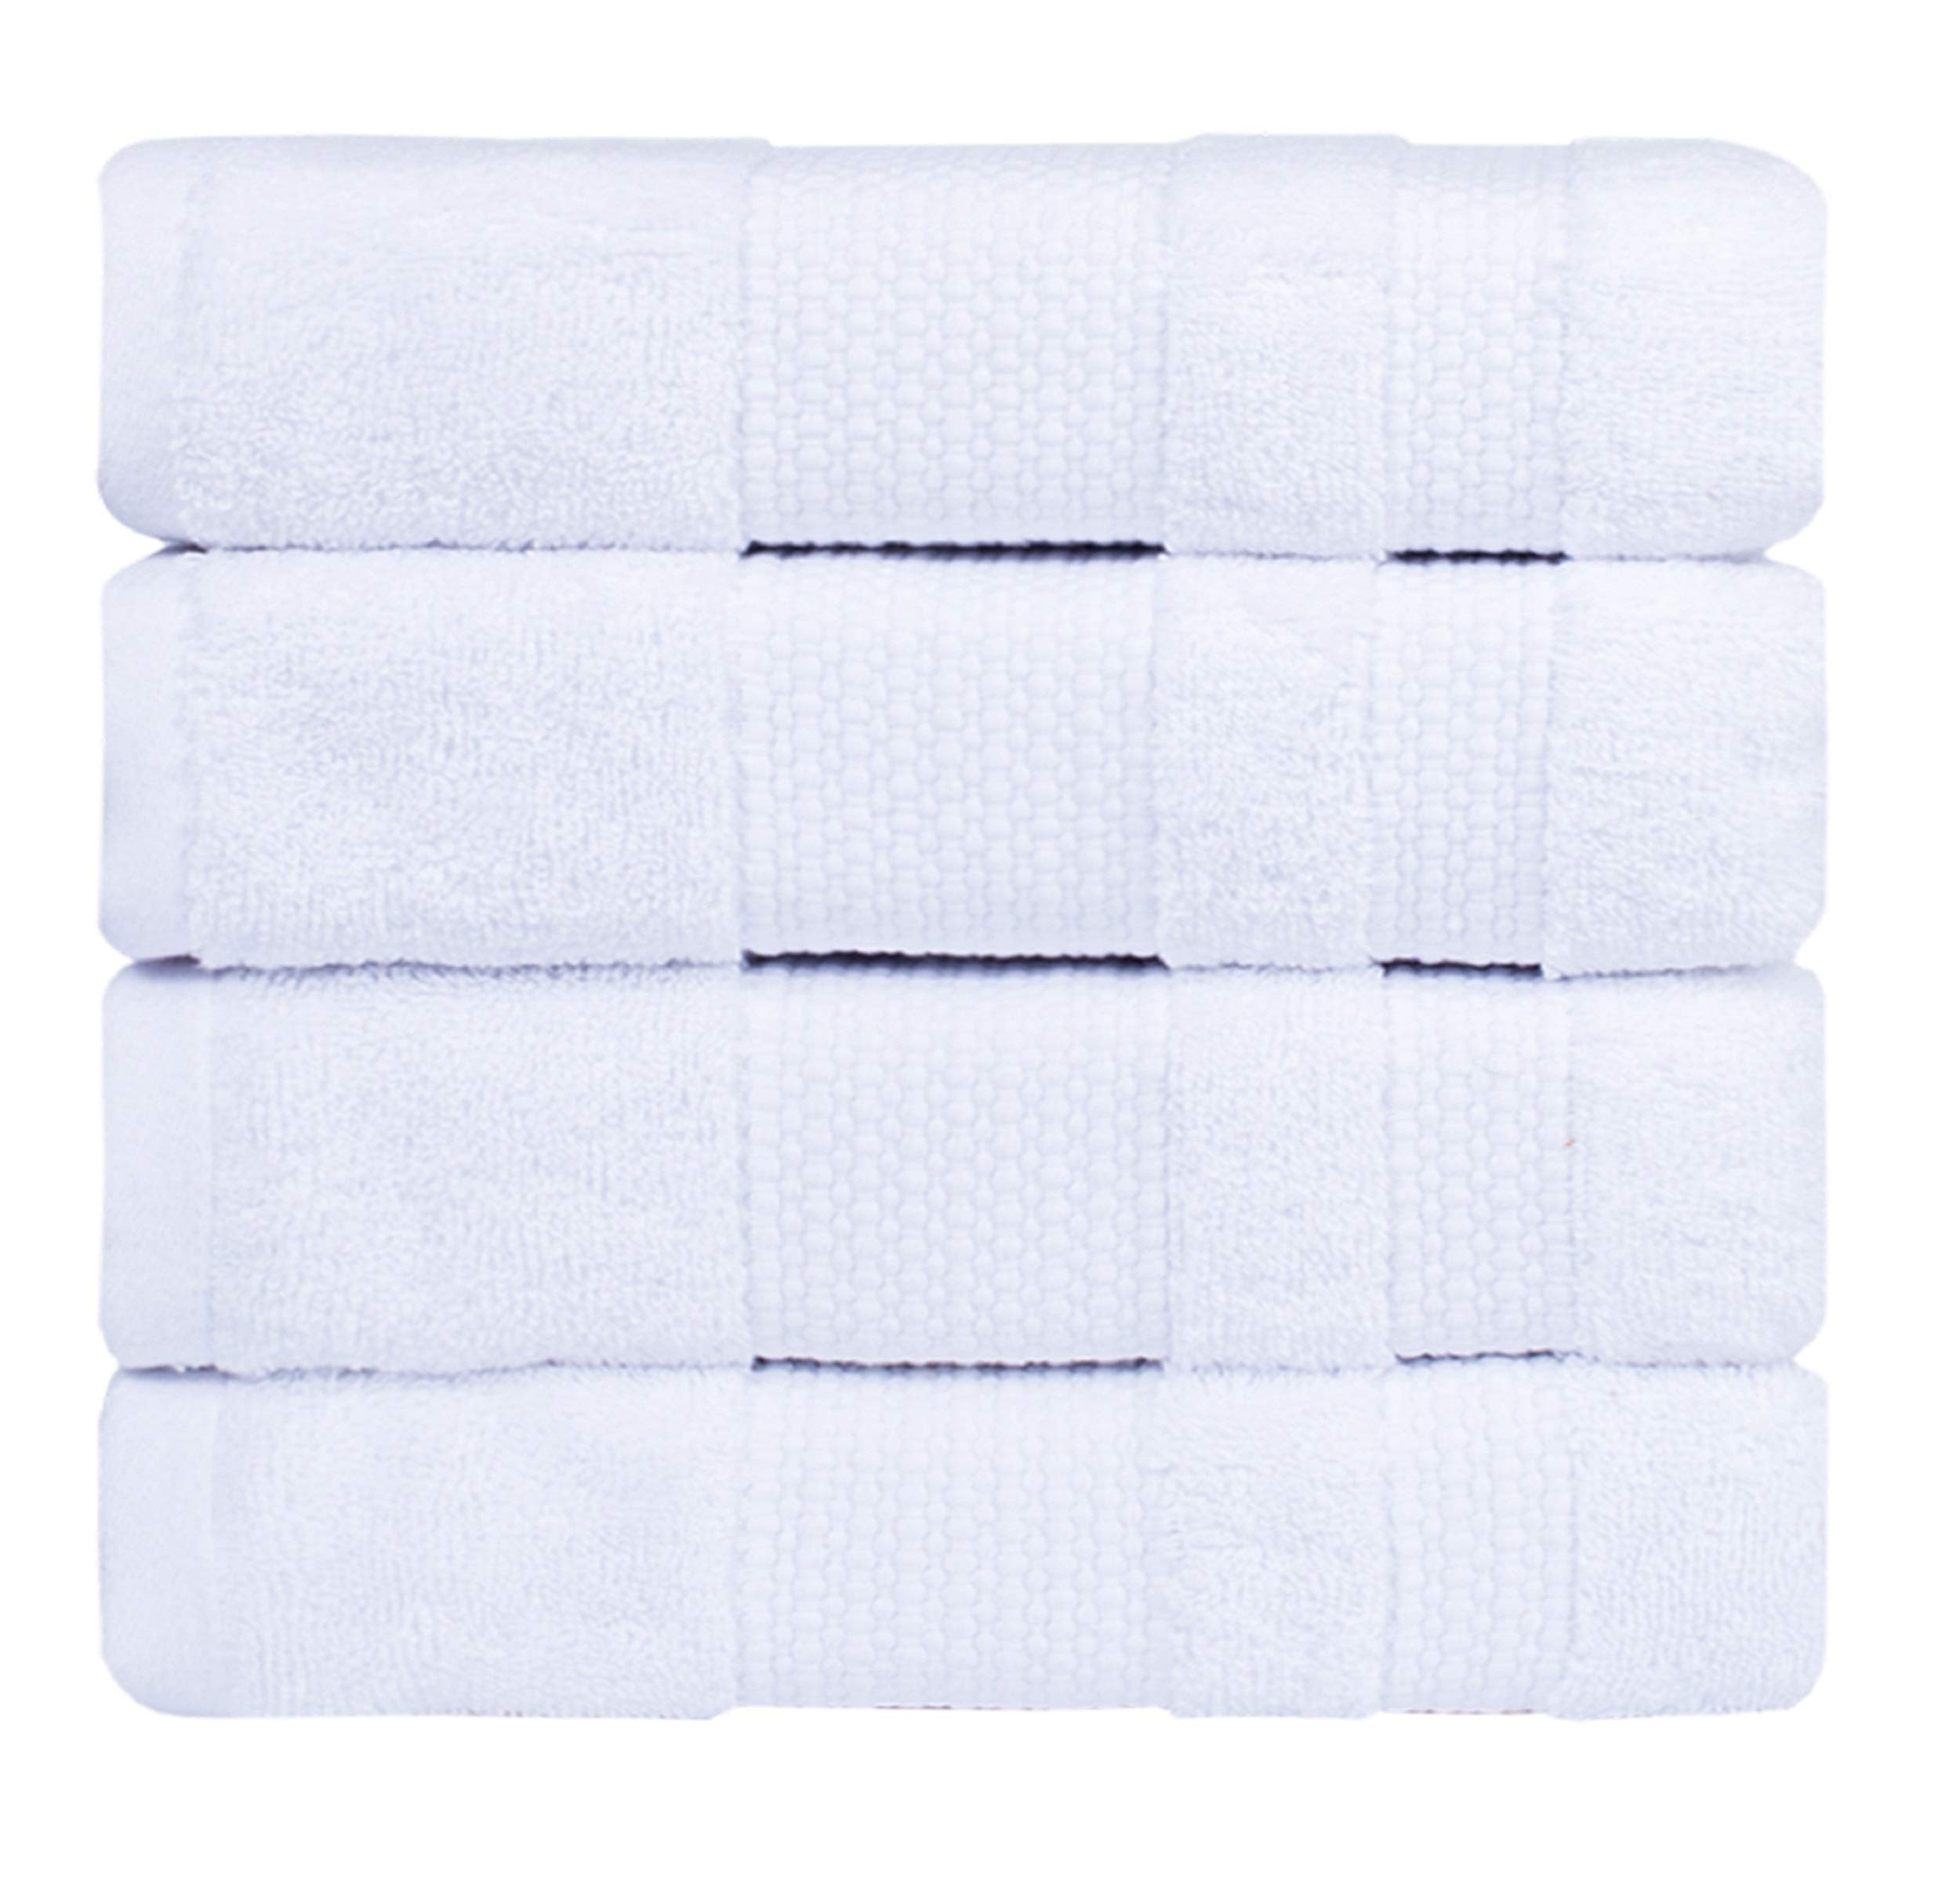 PAMCOTTON Bath Towel Luxury Hotel & Spa Ultra Soft & Absorbent Premium Quality 4 piece of Eco Friendly Bath Towel Set 600 GSM 27x54 inch WHITE